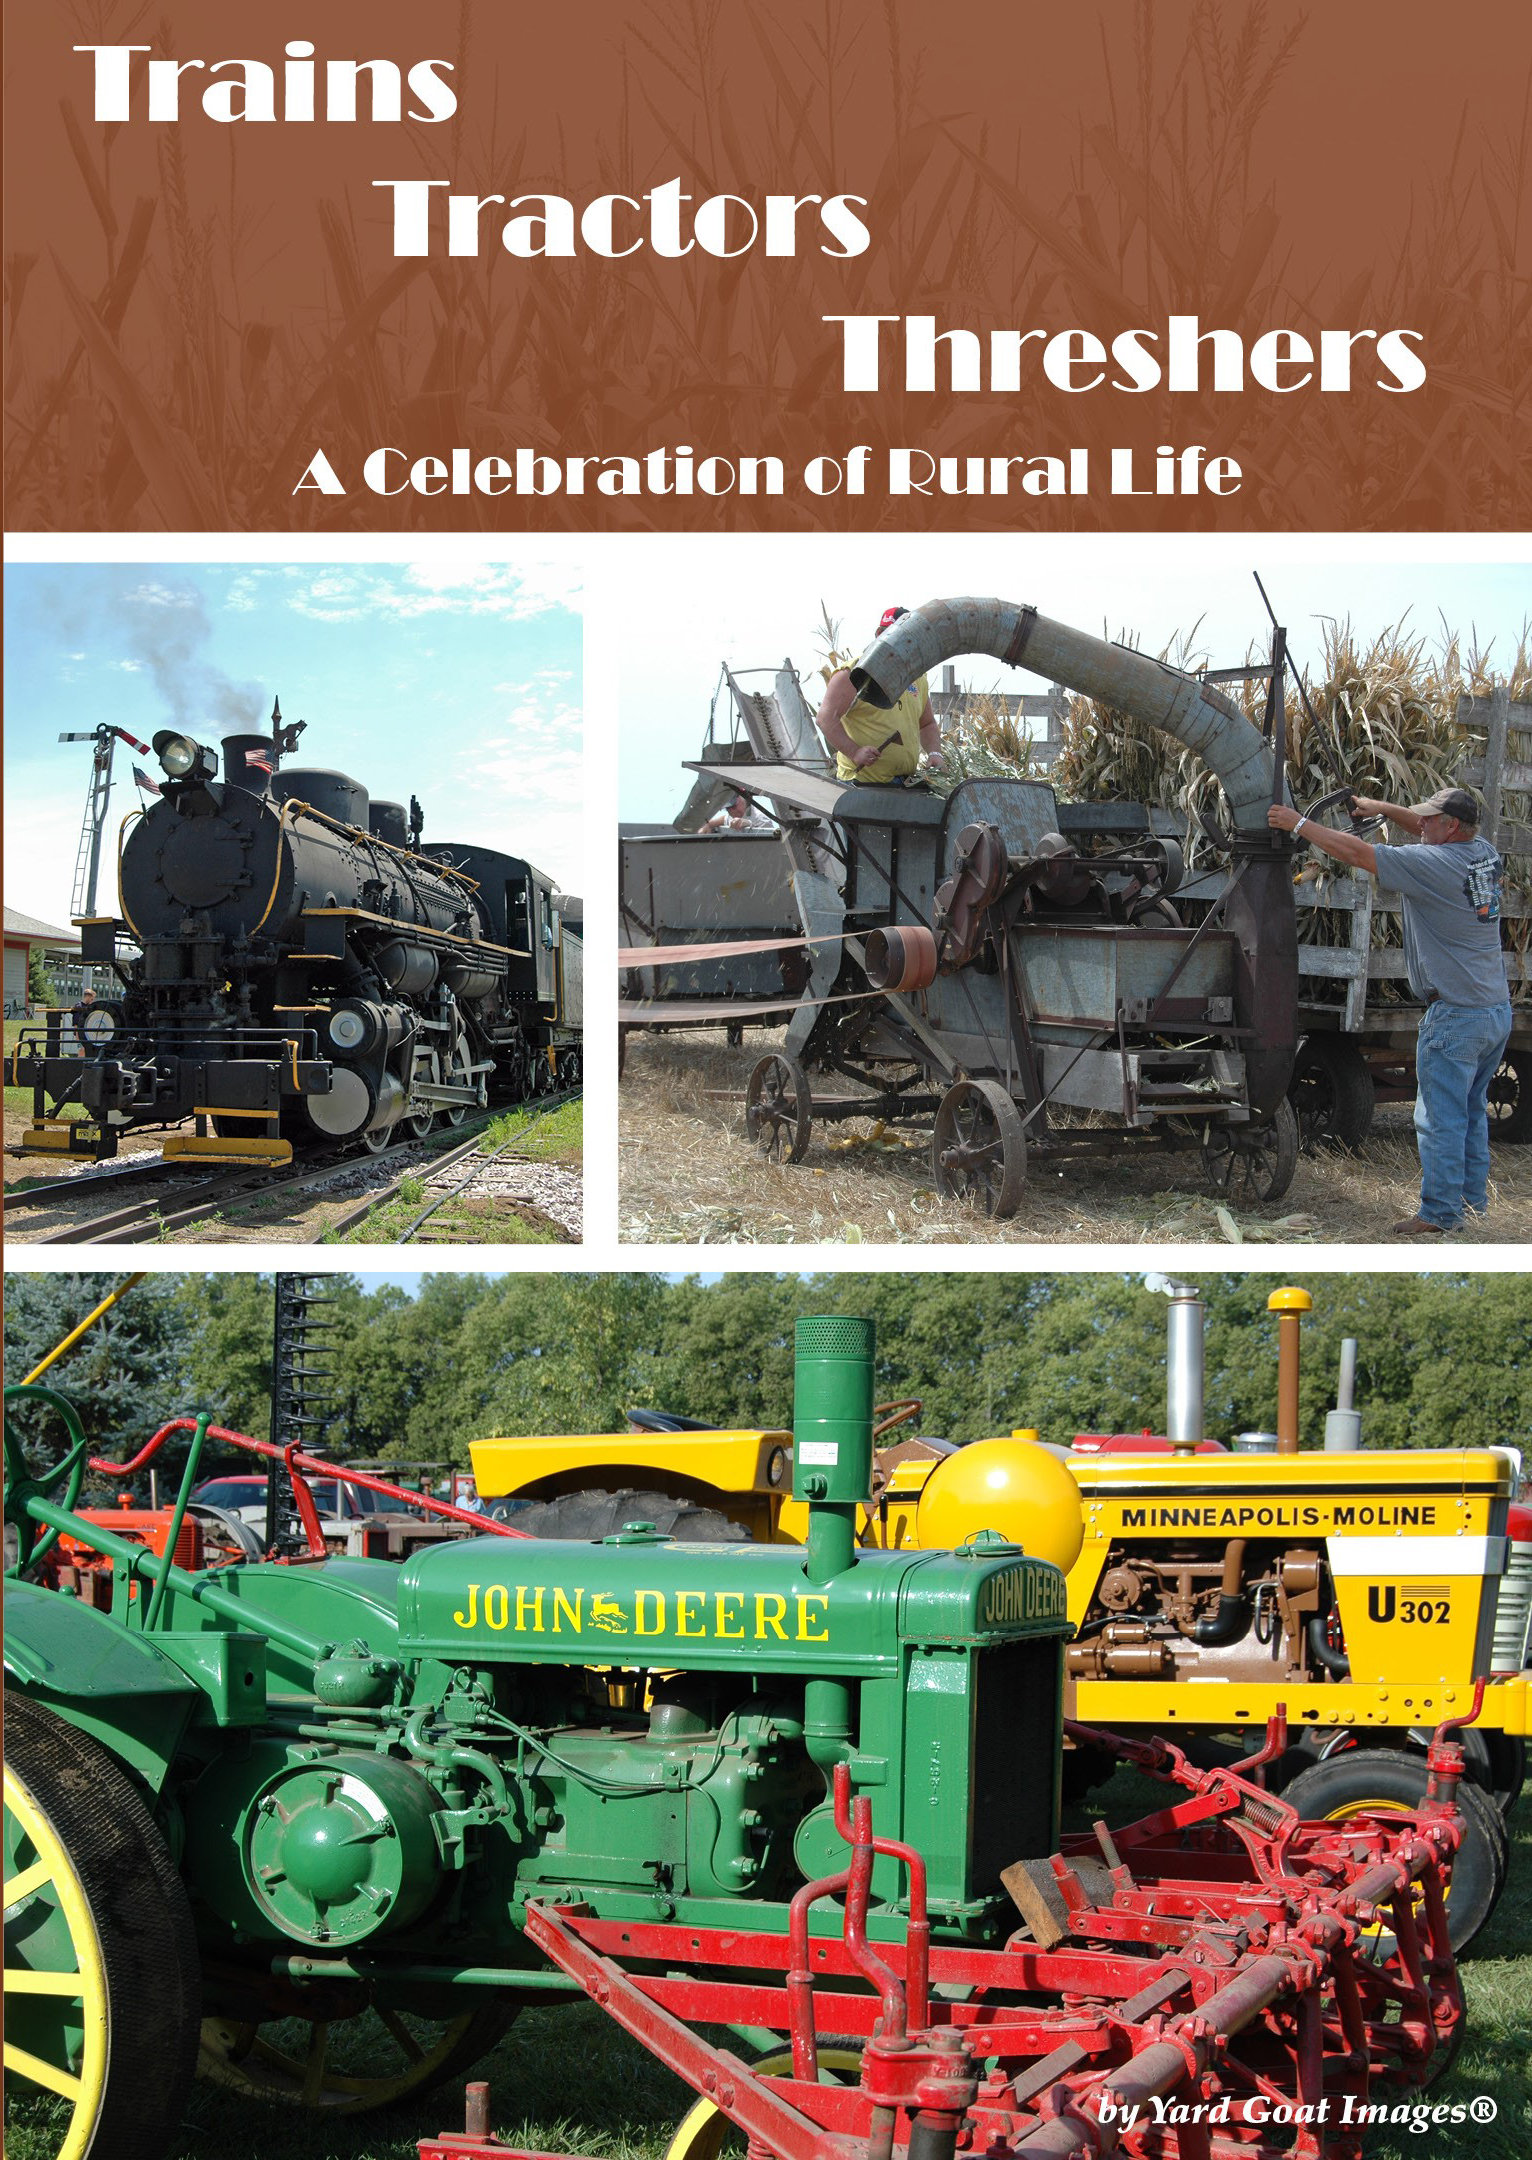 Trains Tractors Threshers - A Celebration of Rural Life 1710